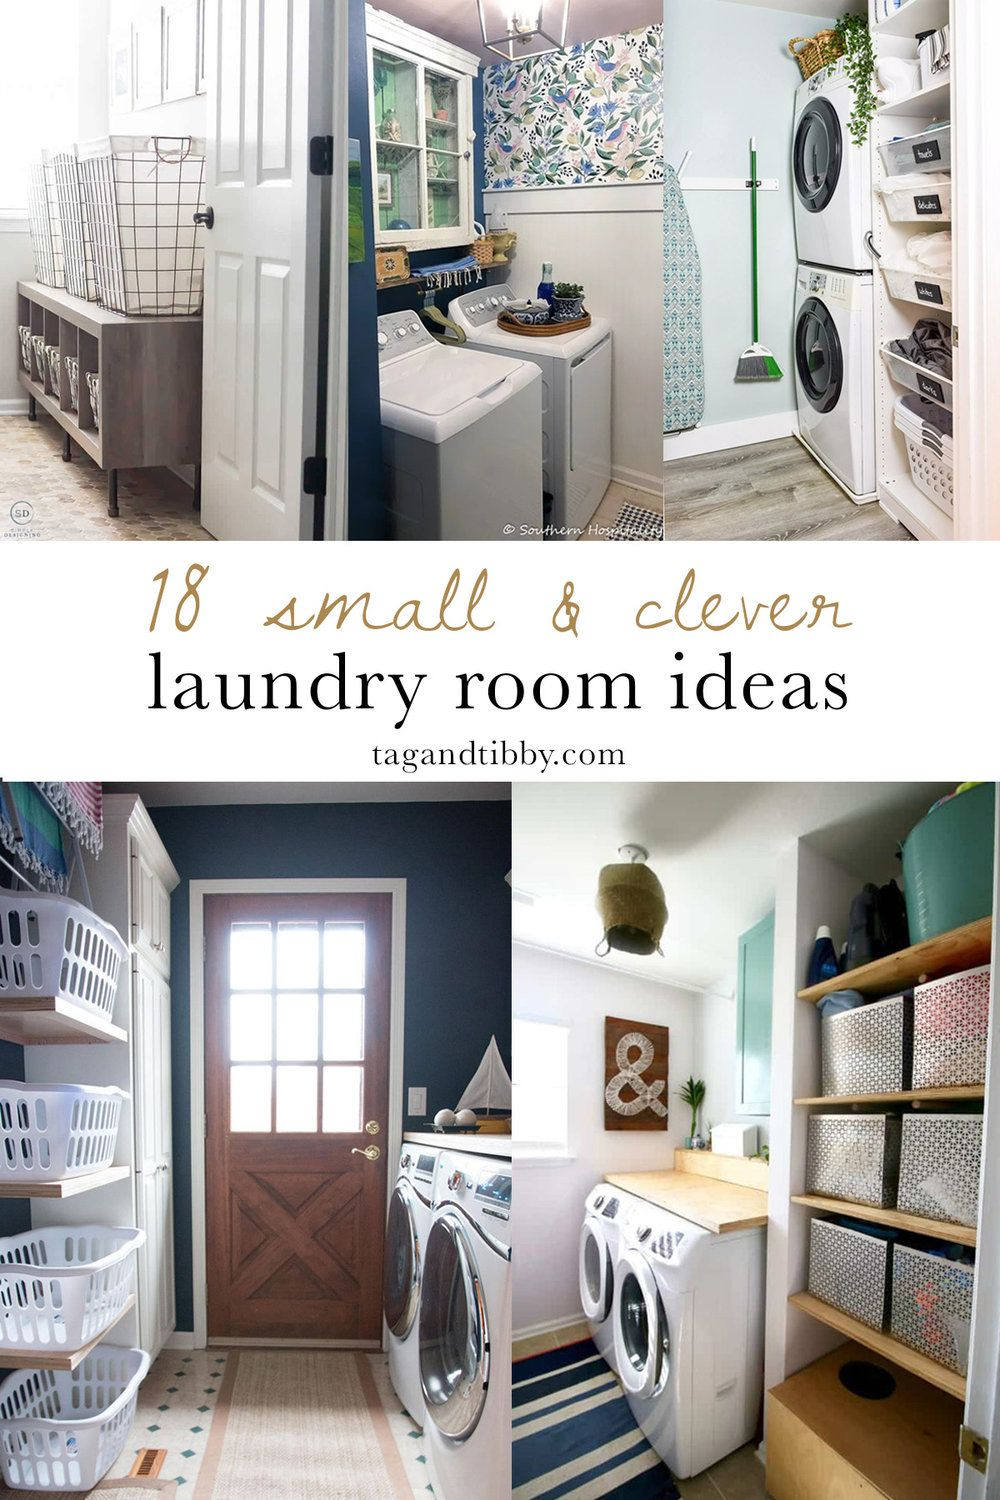 18 Small Laundry Room Makeover Ideas Tag Tibby Design Small Laundry Room Makeover Laundry Room Makeover Small Laundry Rooms